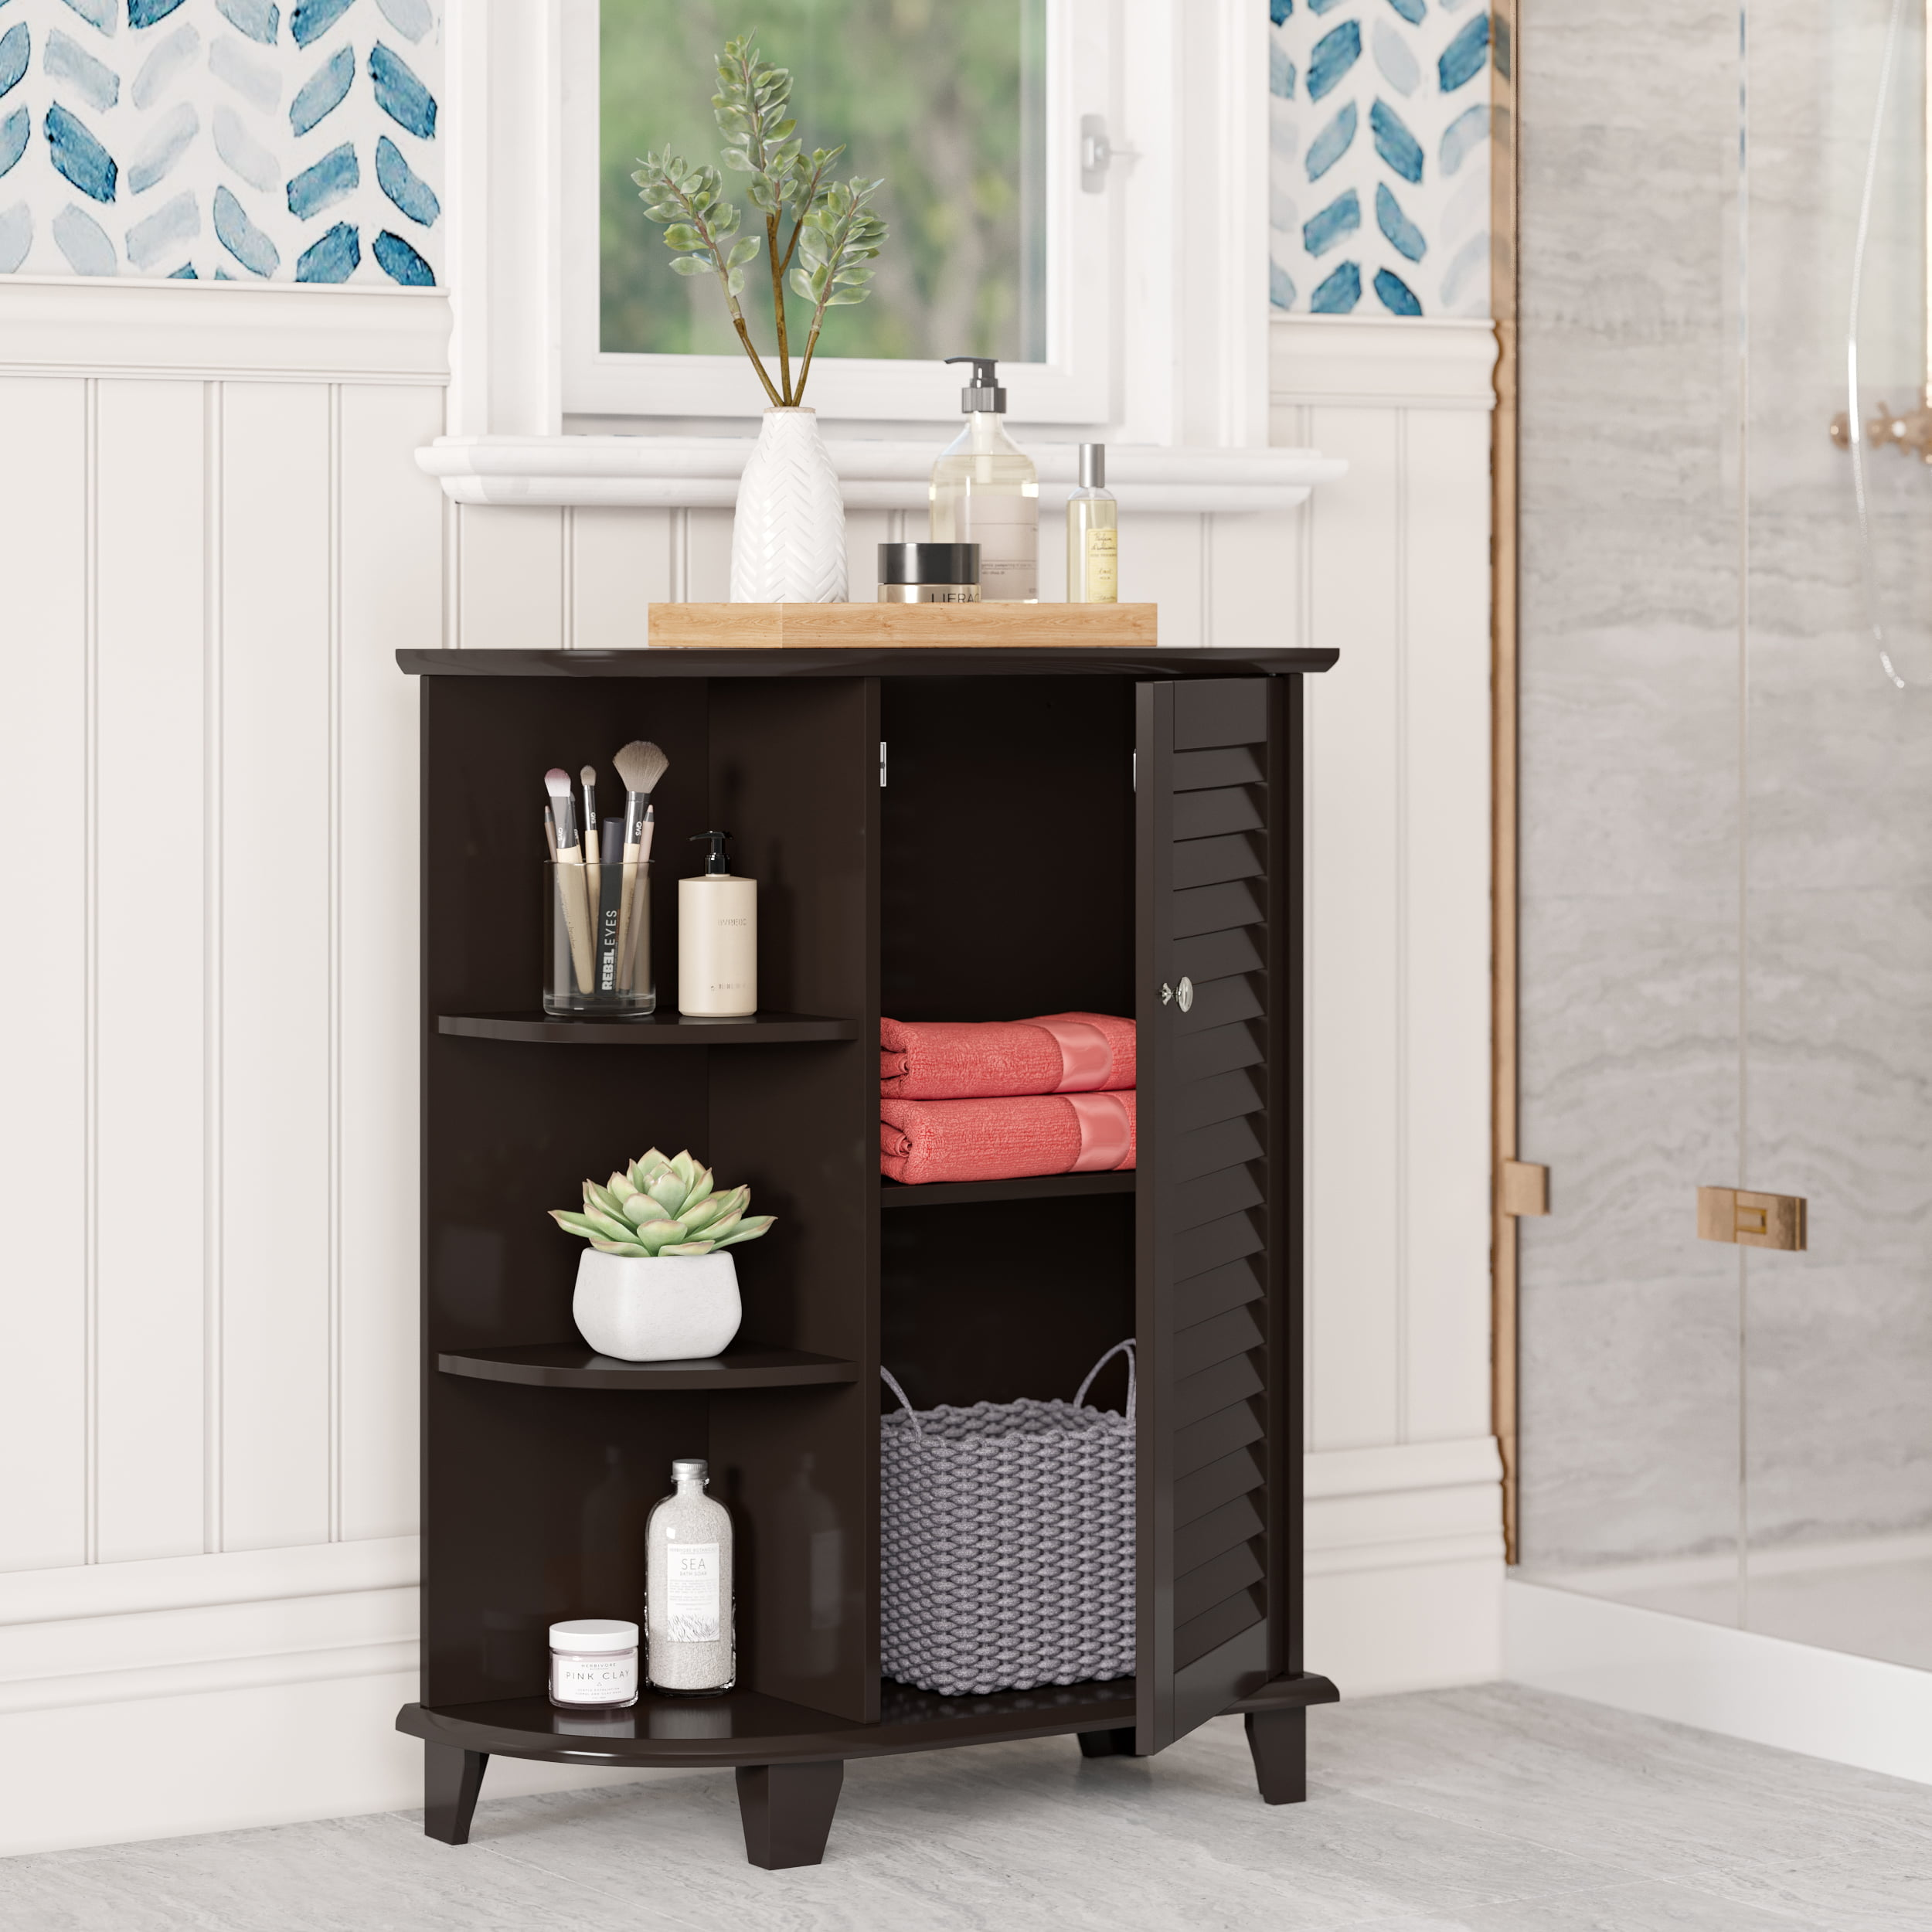 Espresso RiverRidge Ellsworth Collection Floor Cabinet with Side Shelves